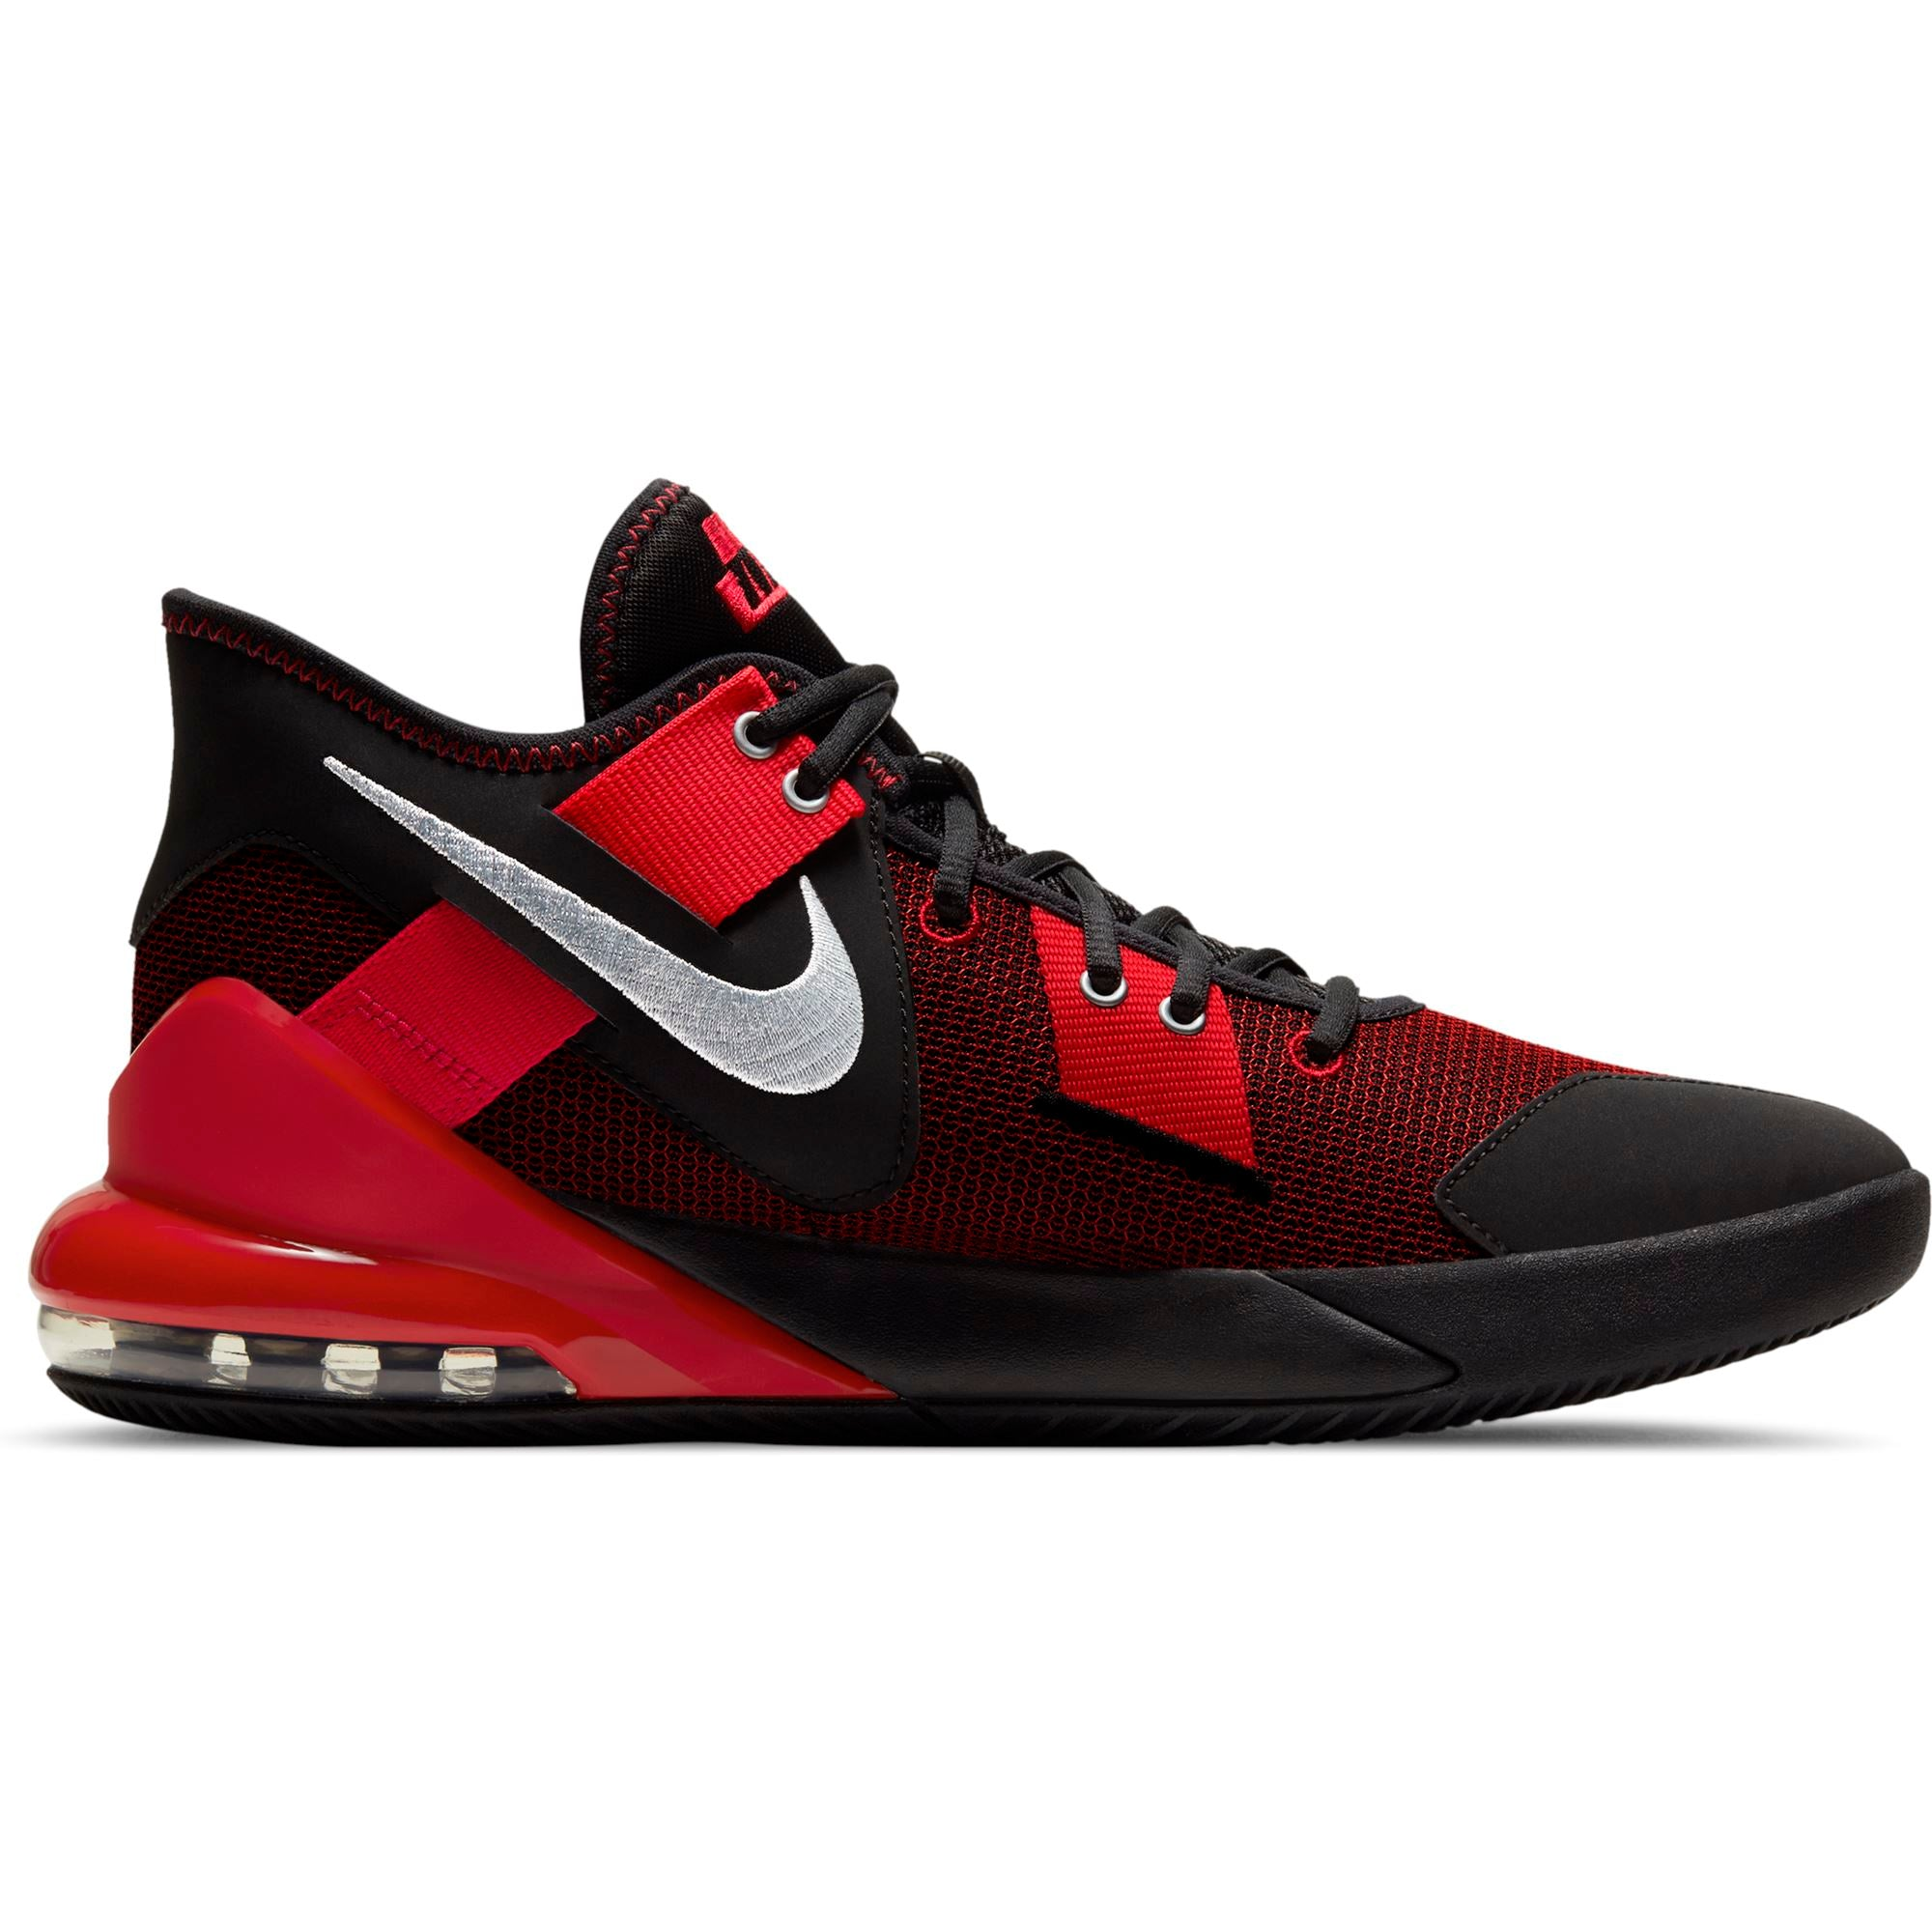 Nike Air Max Impact 2 - Black/Metallic Silver-Gym Red SP-Footwear-Mens Nike